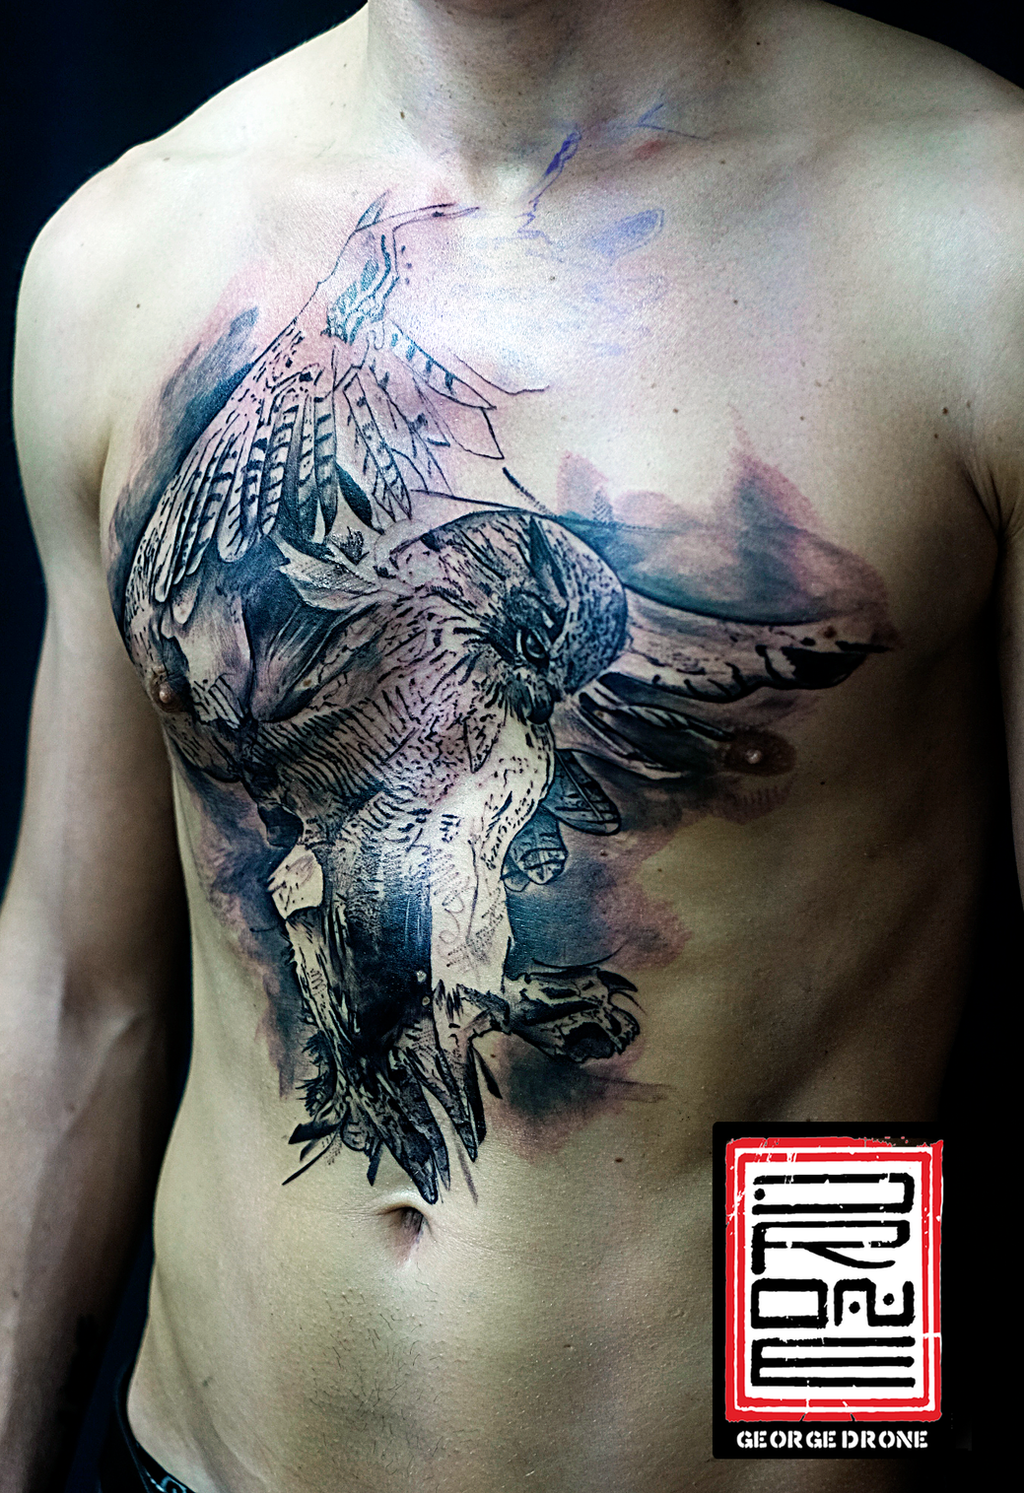 Owl chest tattoo black and grey george drone by drone80 for Black and grey chest tattoos